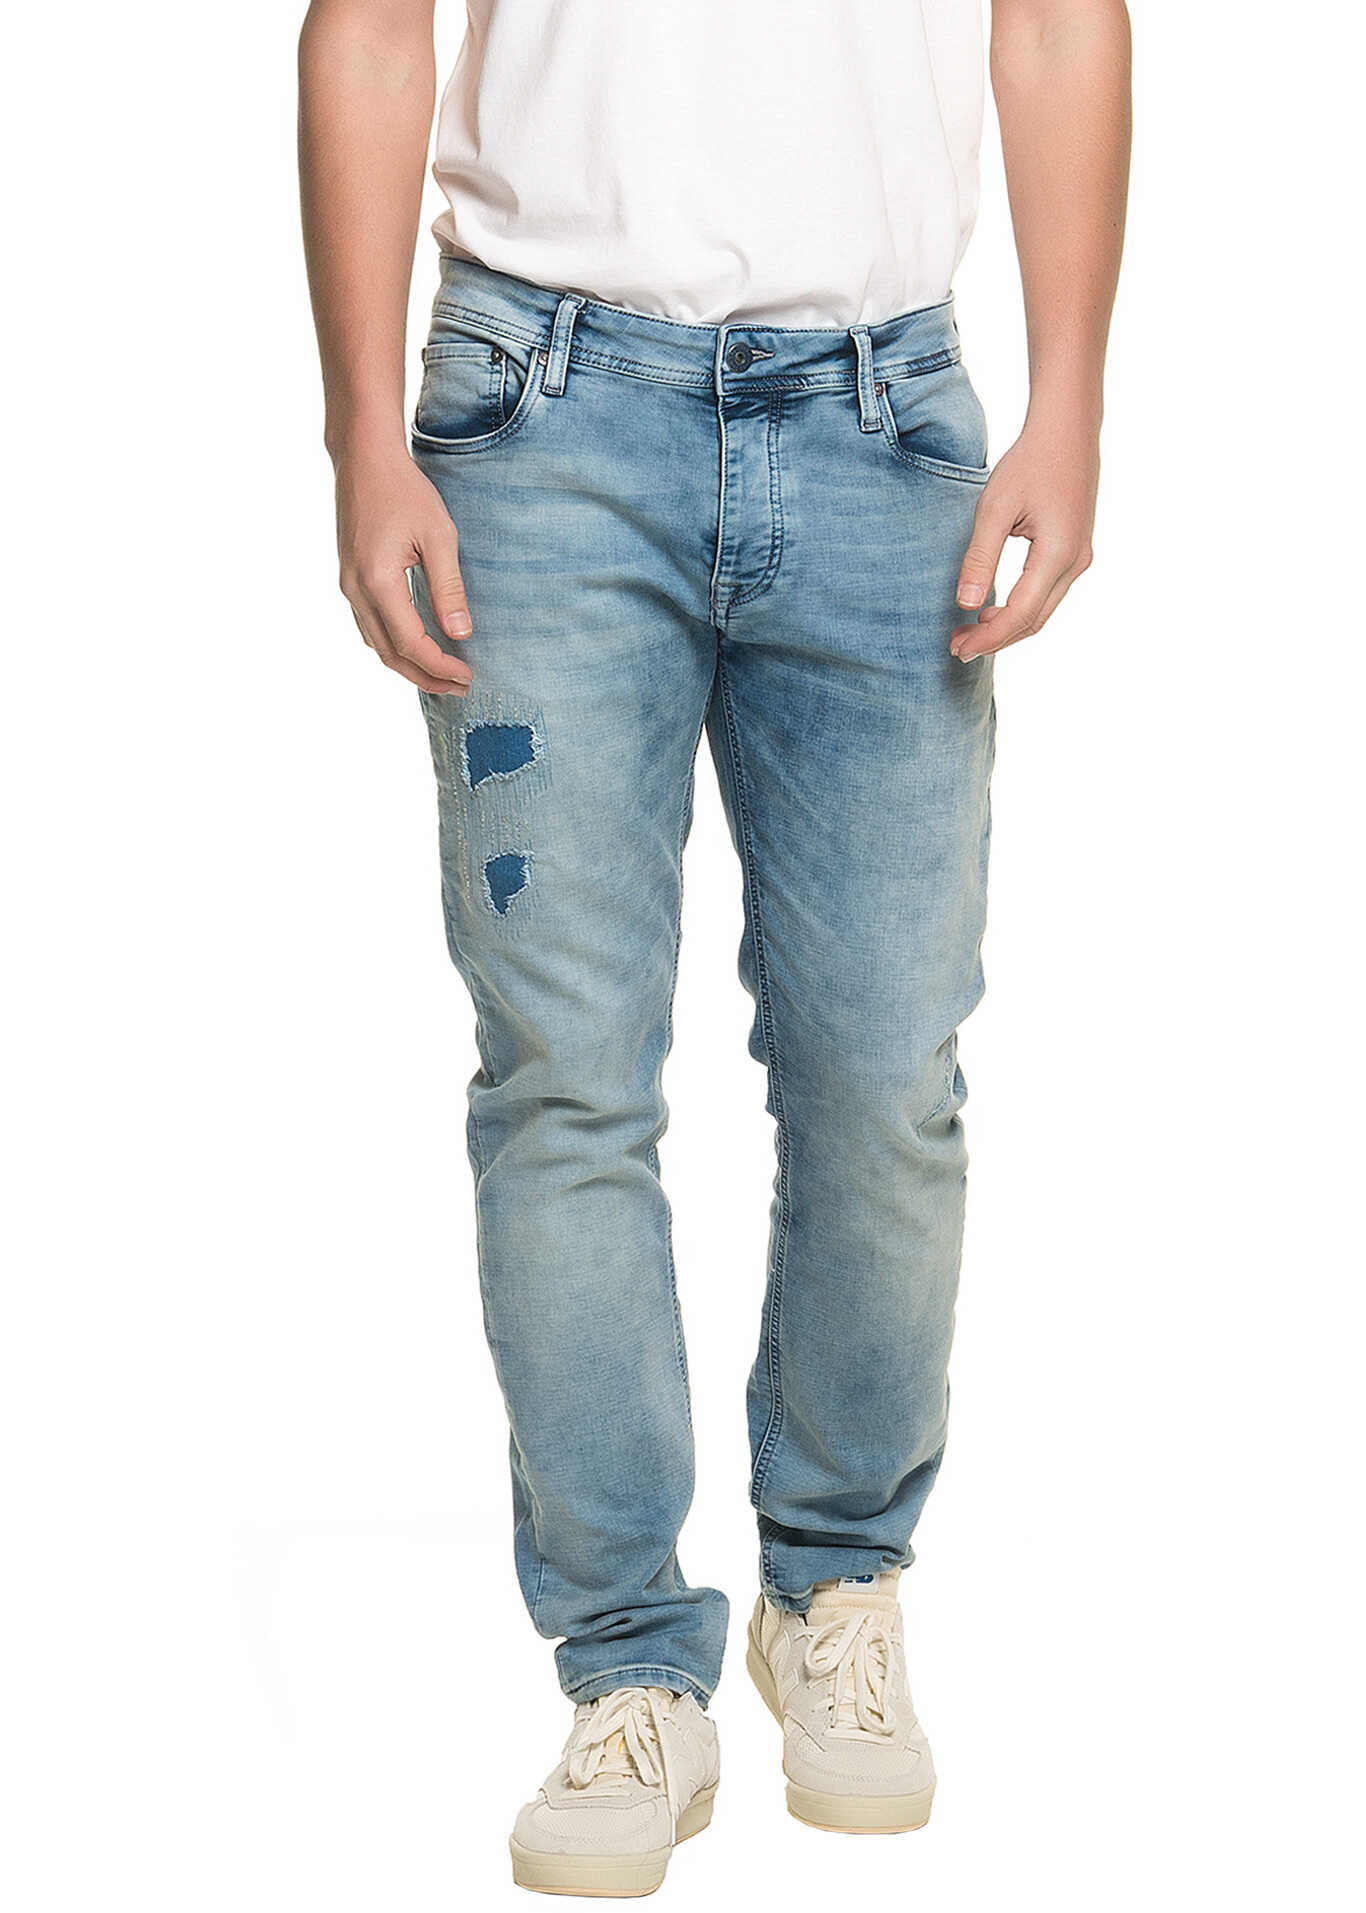 Jack & Jones Tim Org Jeans Men's Jeans* Blue Denim